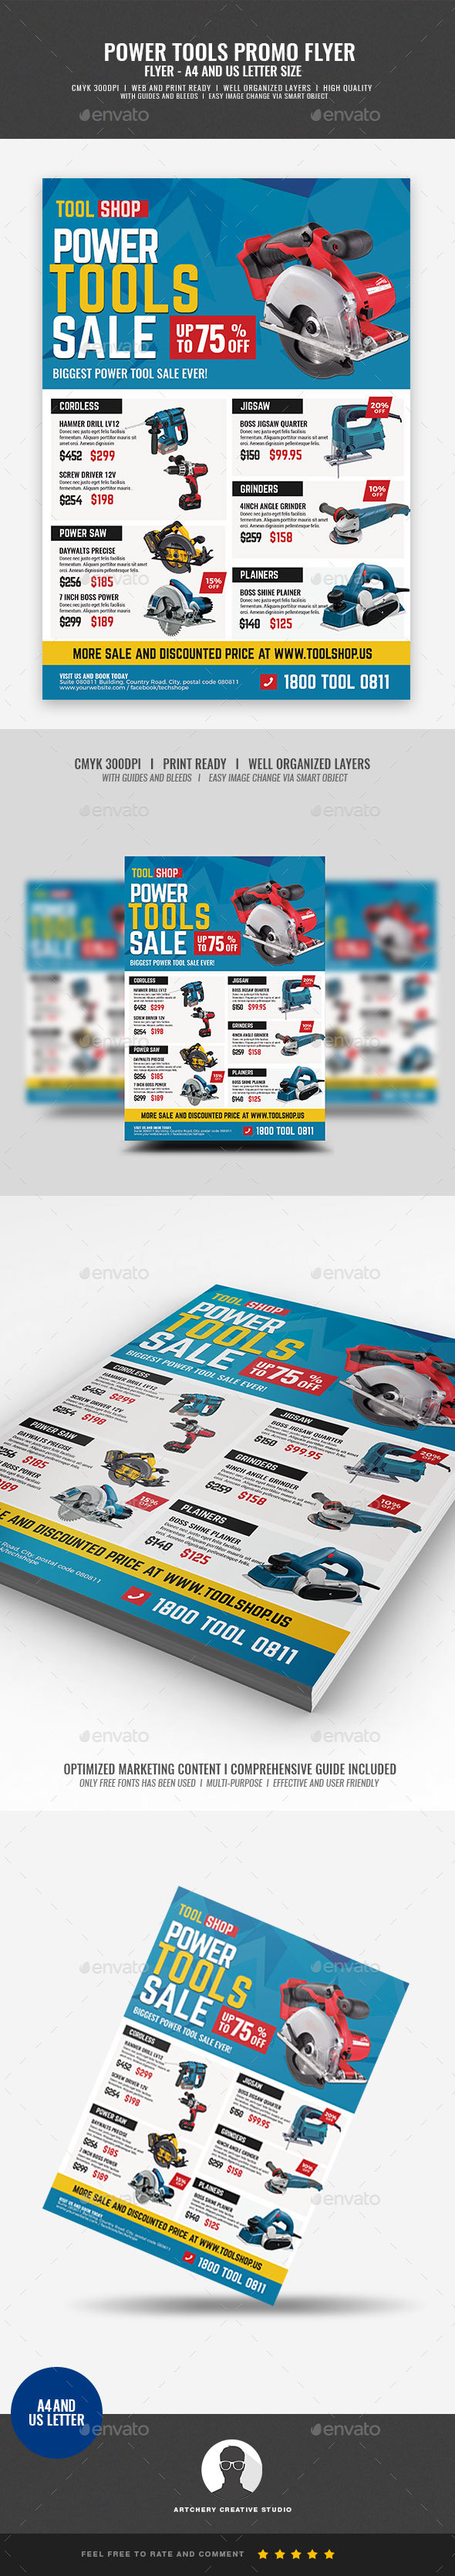 Power Tools Sale Flyer - Commerce Flyers